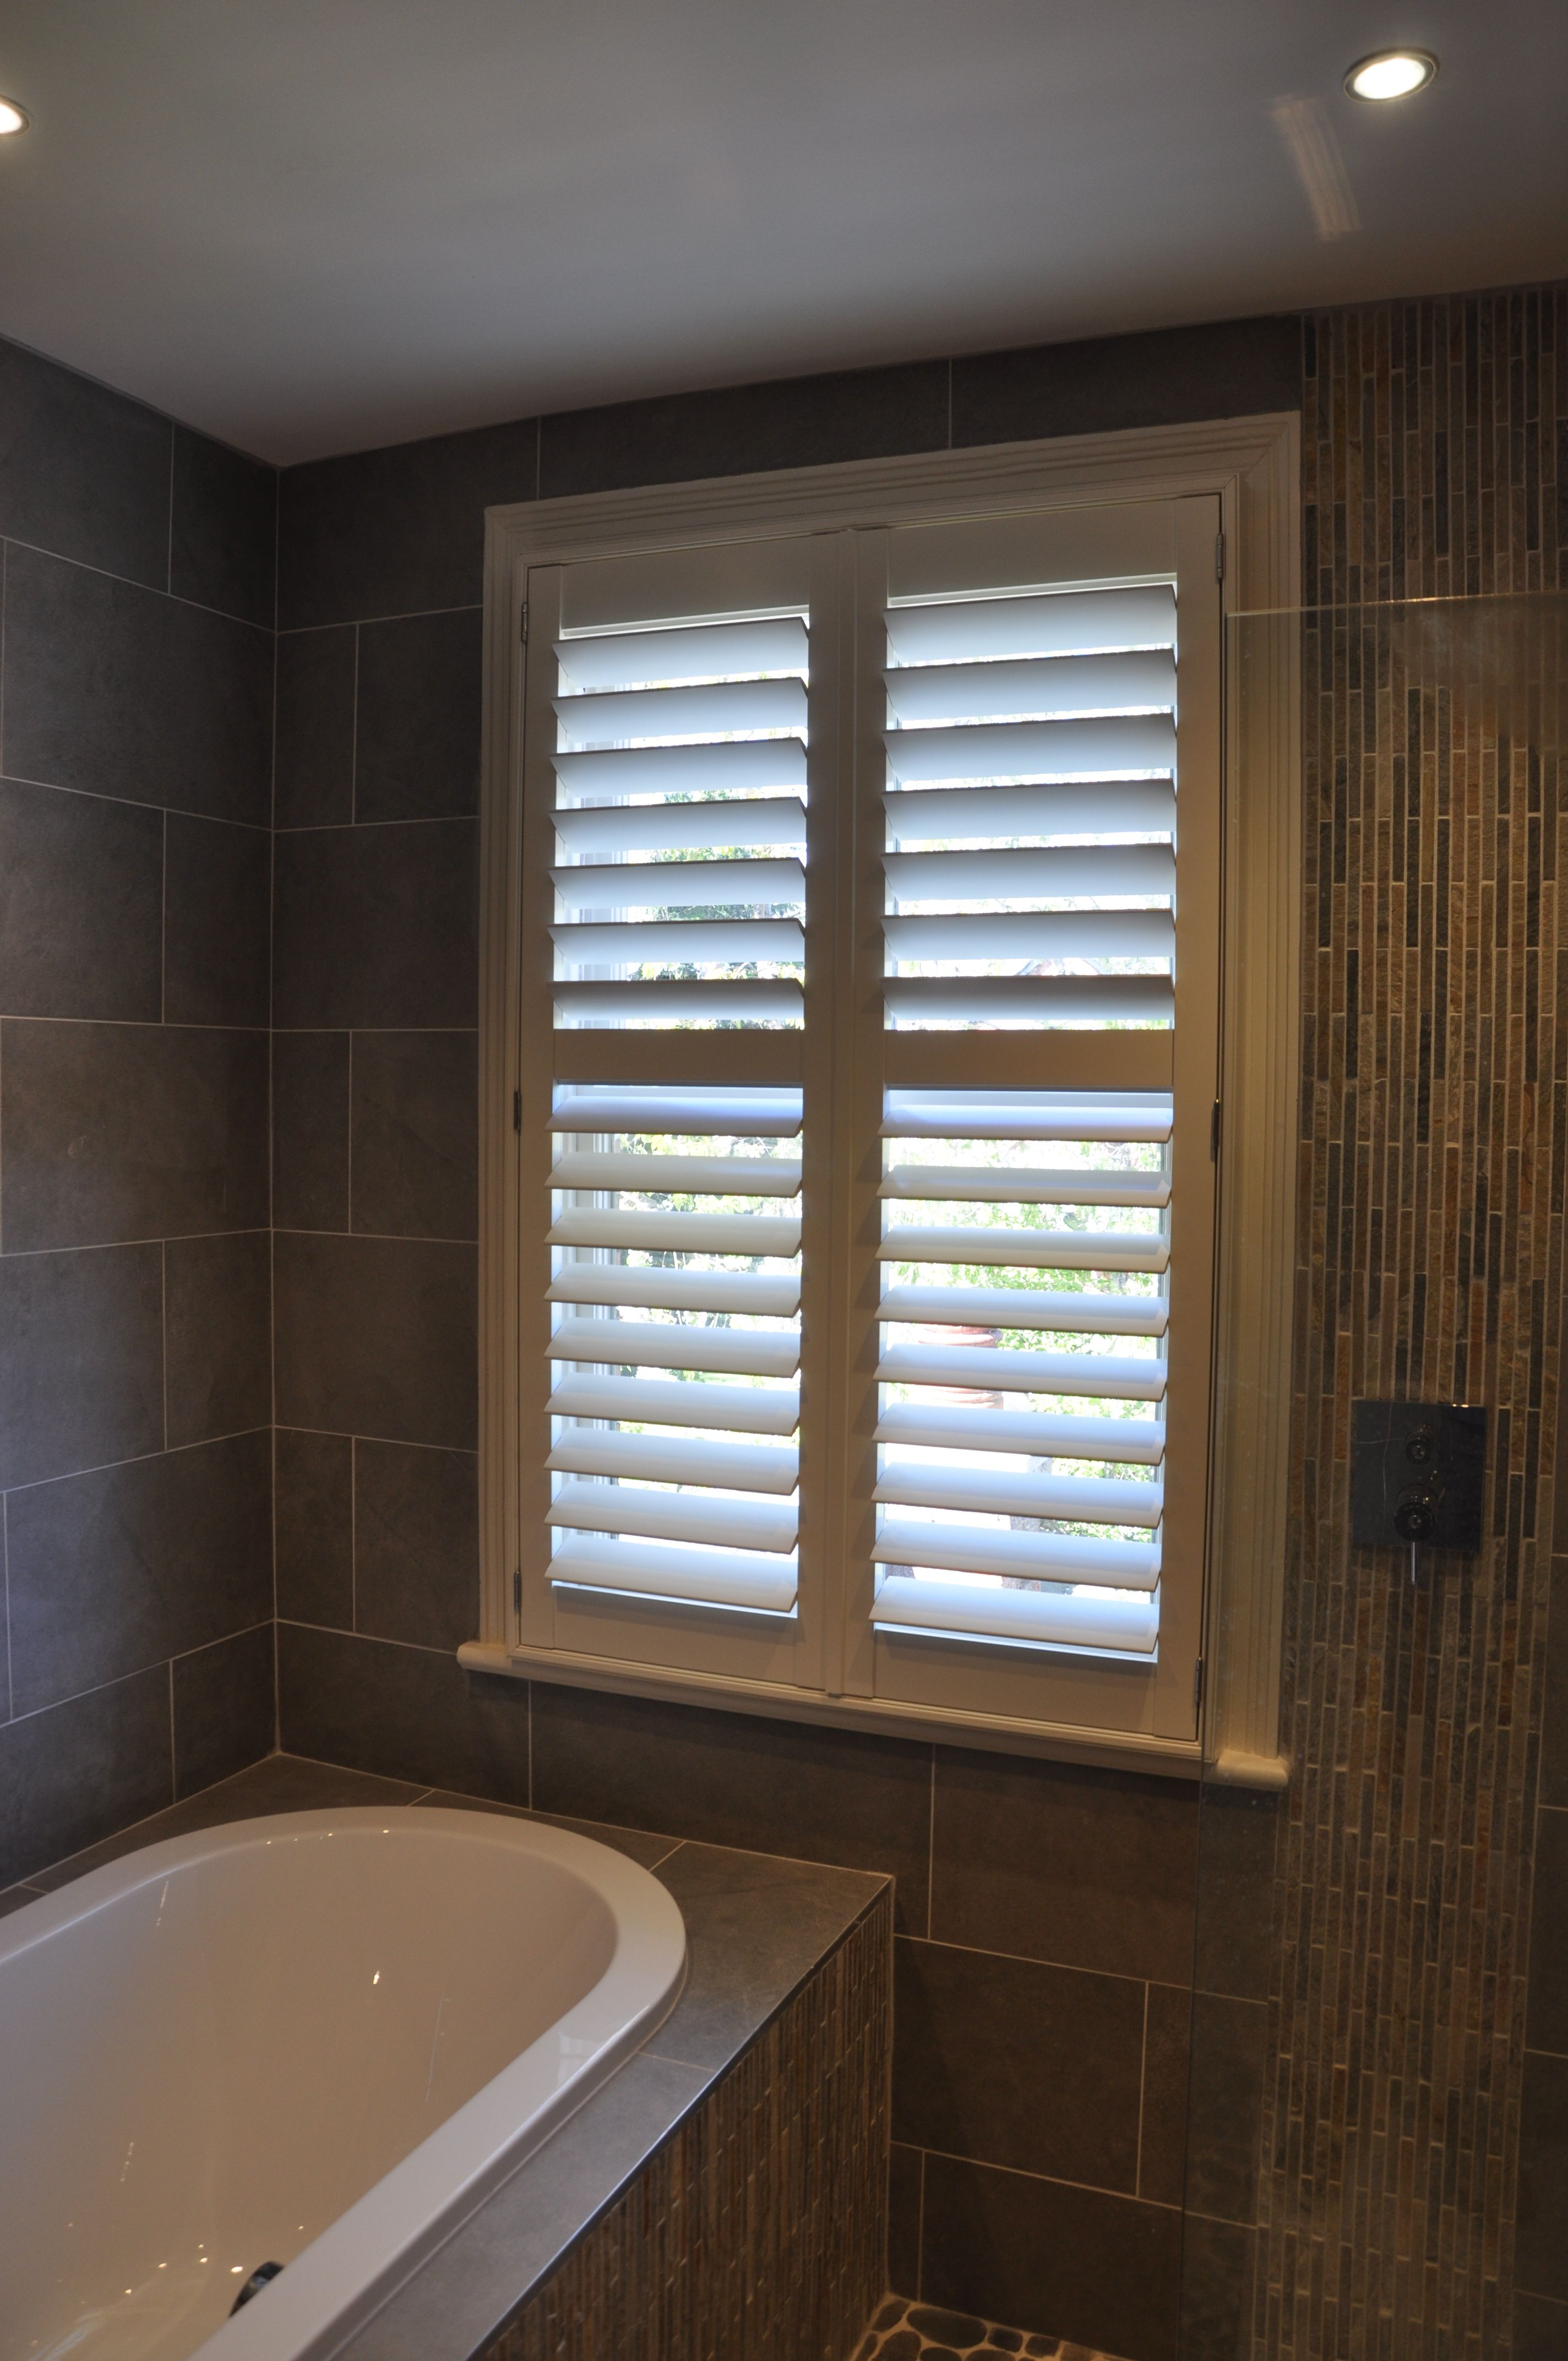 Beautifully Shuttered Bathroom Shutter Ed In York Large Louvres With Hidden Tilt Function The Colour